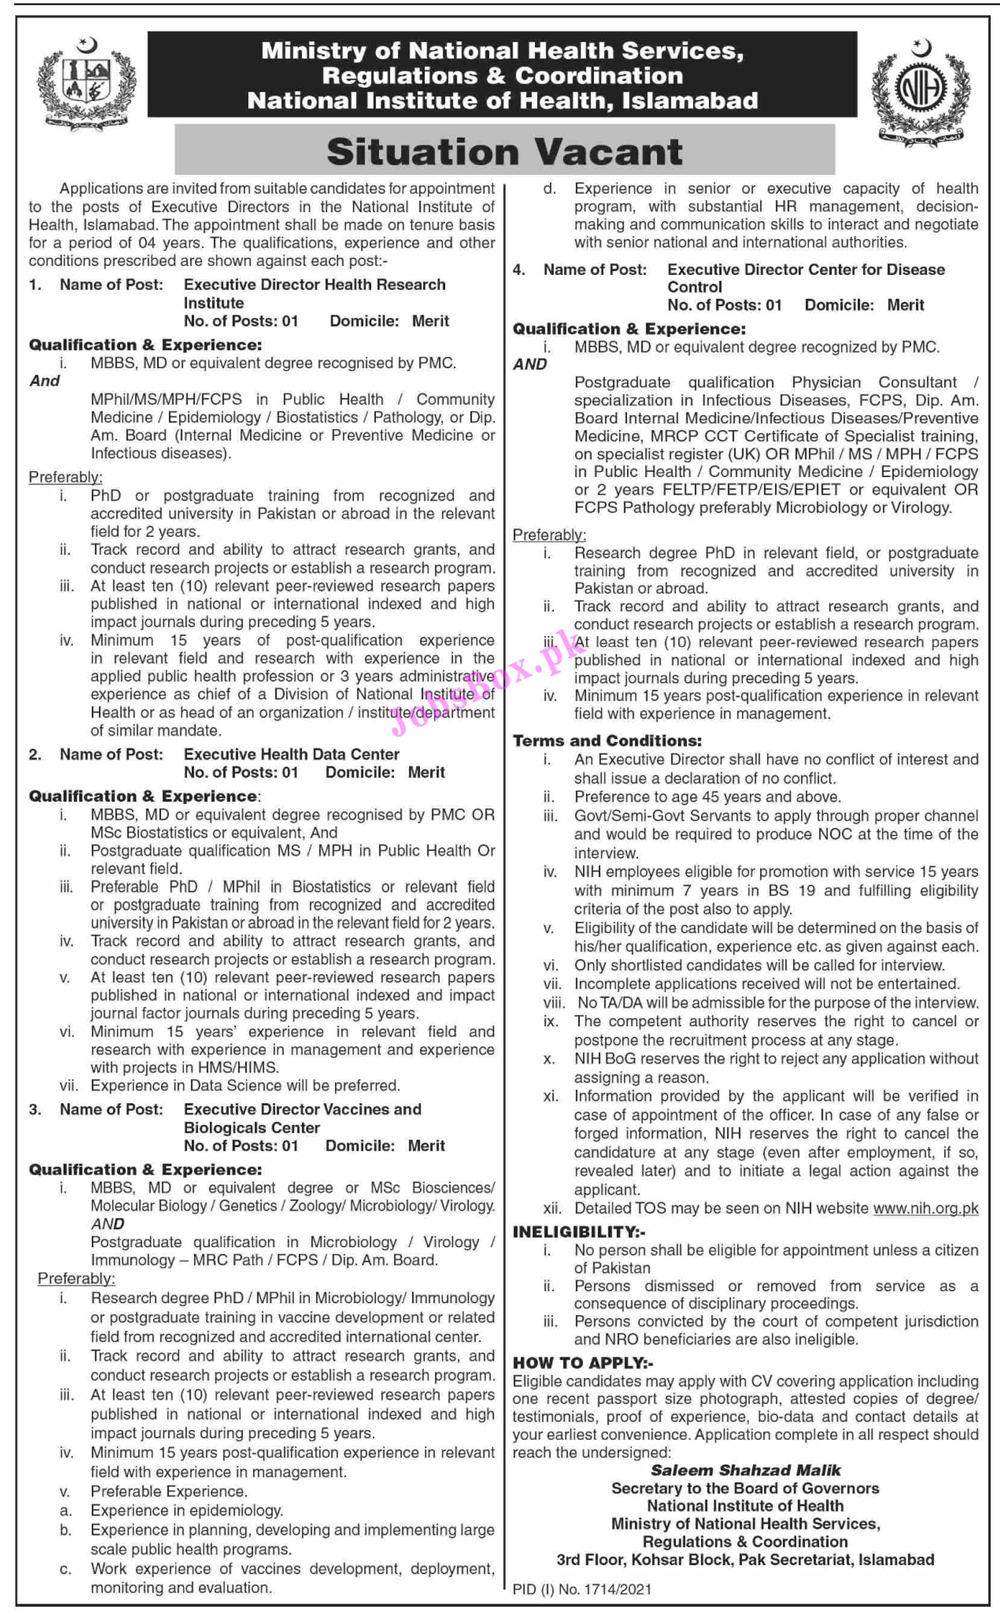 Ministry of National Health Services Jobs 2021 – NIH Jobs